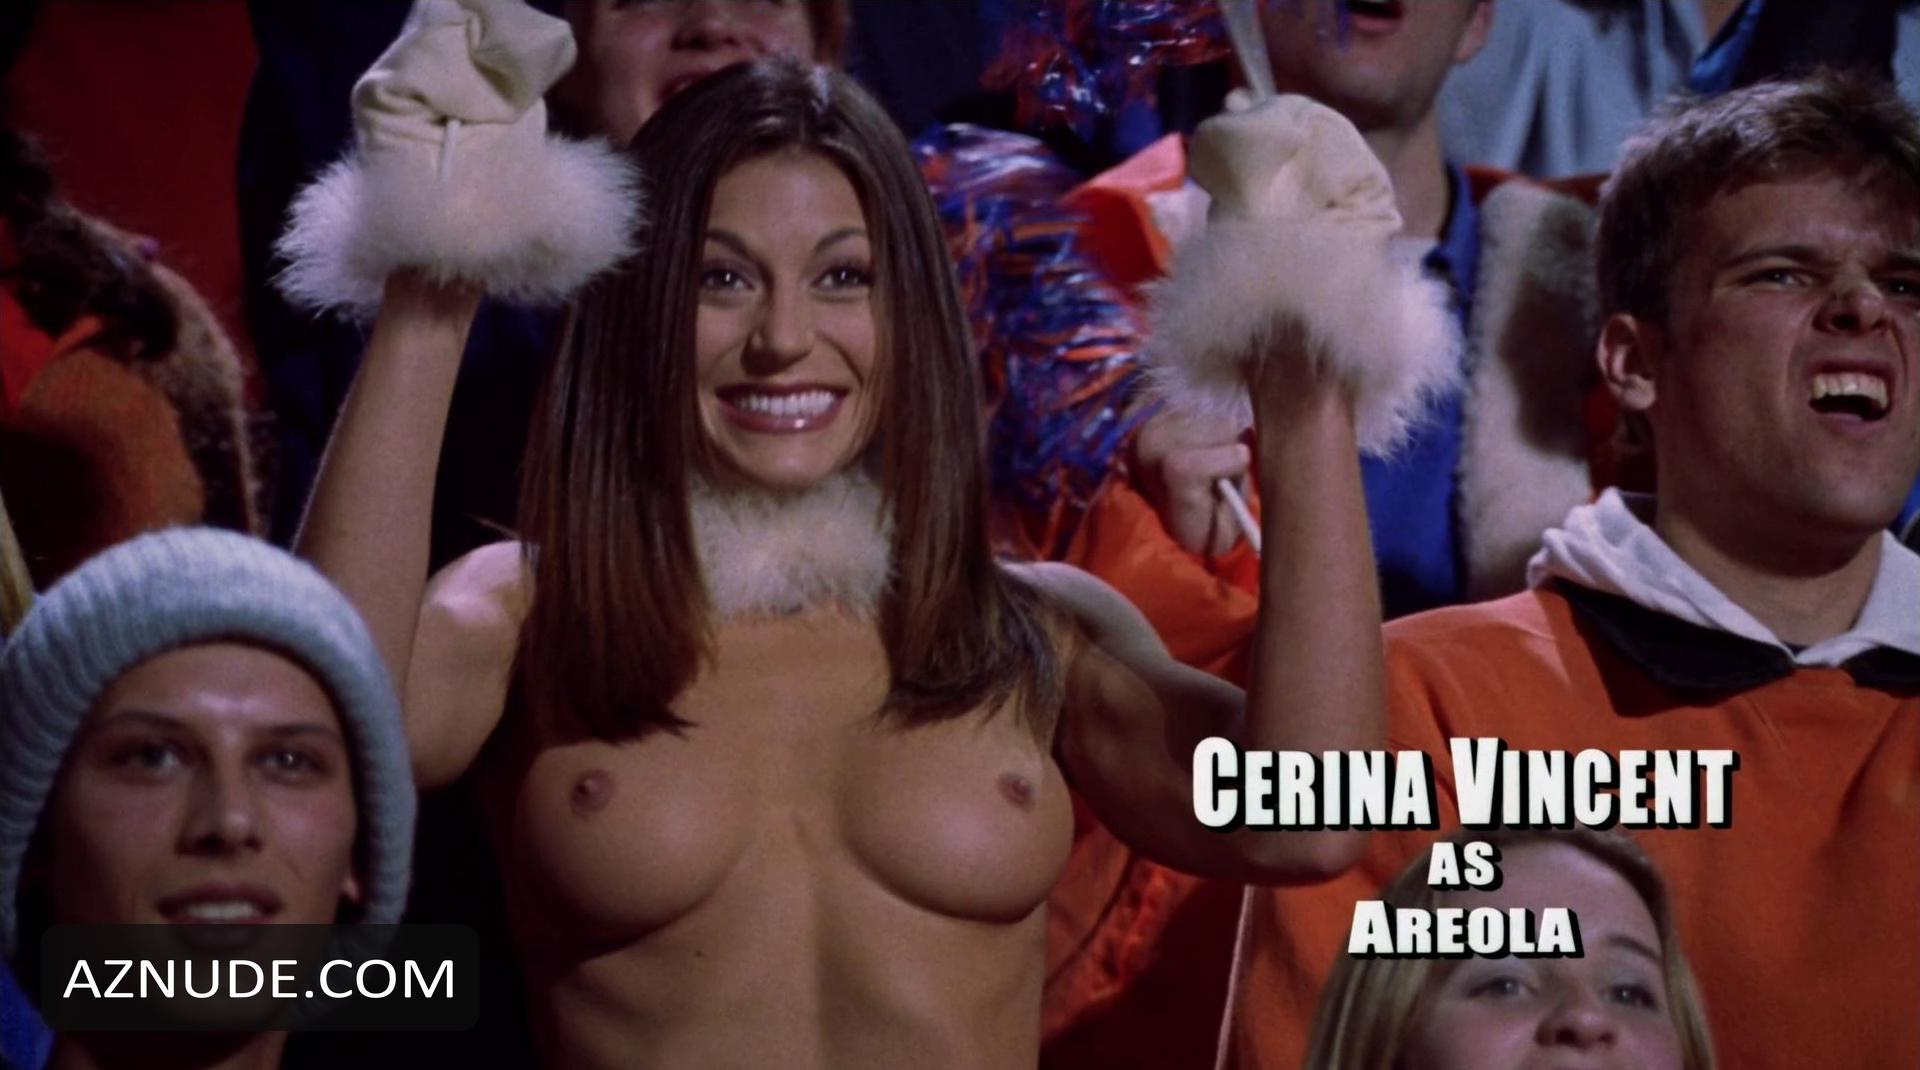 That cerina vincent not another are mistaken